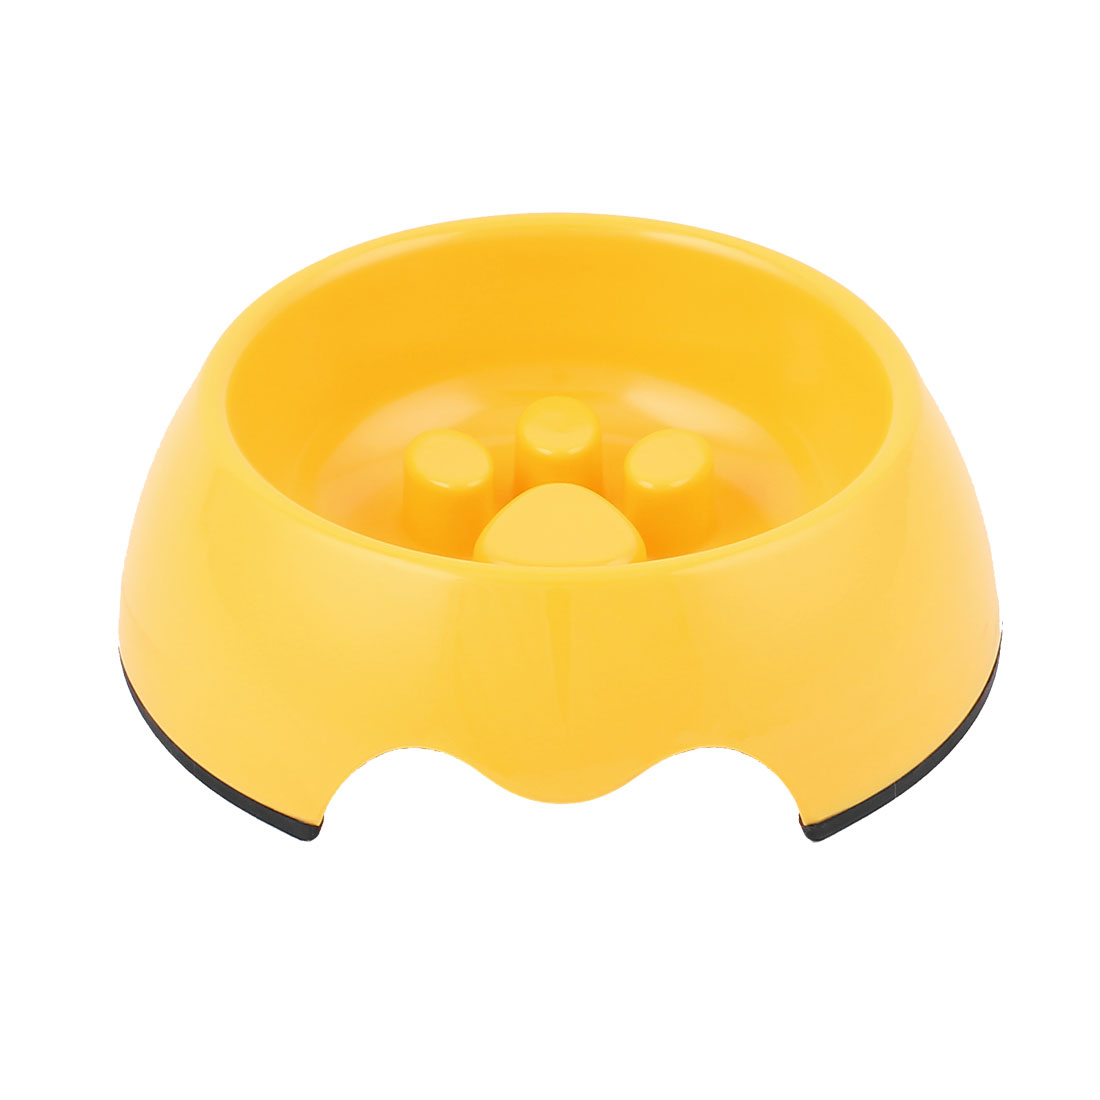 Plastic Pet Dog Puppy Stop Fast Slow Eating Bloat Food Feeder Bowl Yellow